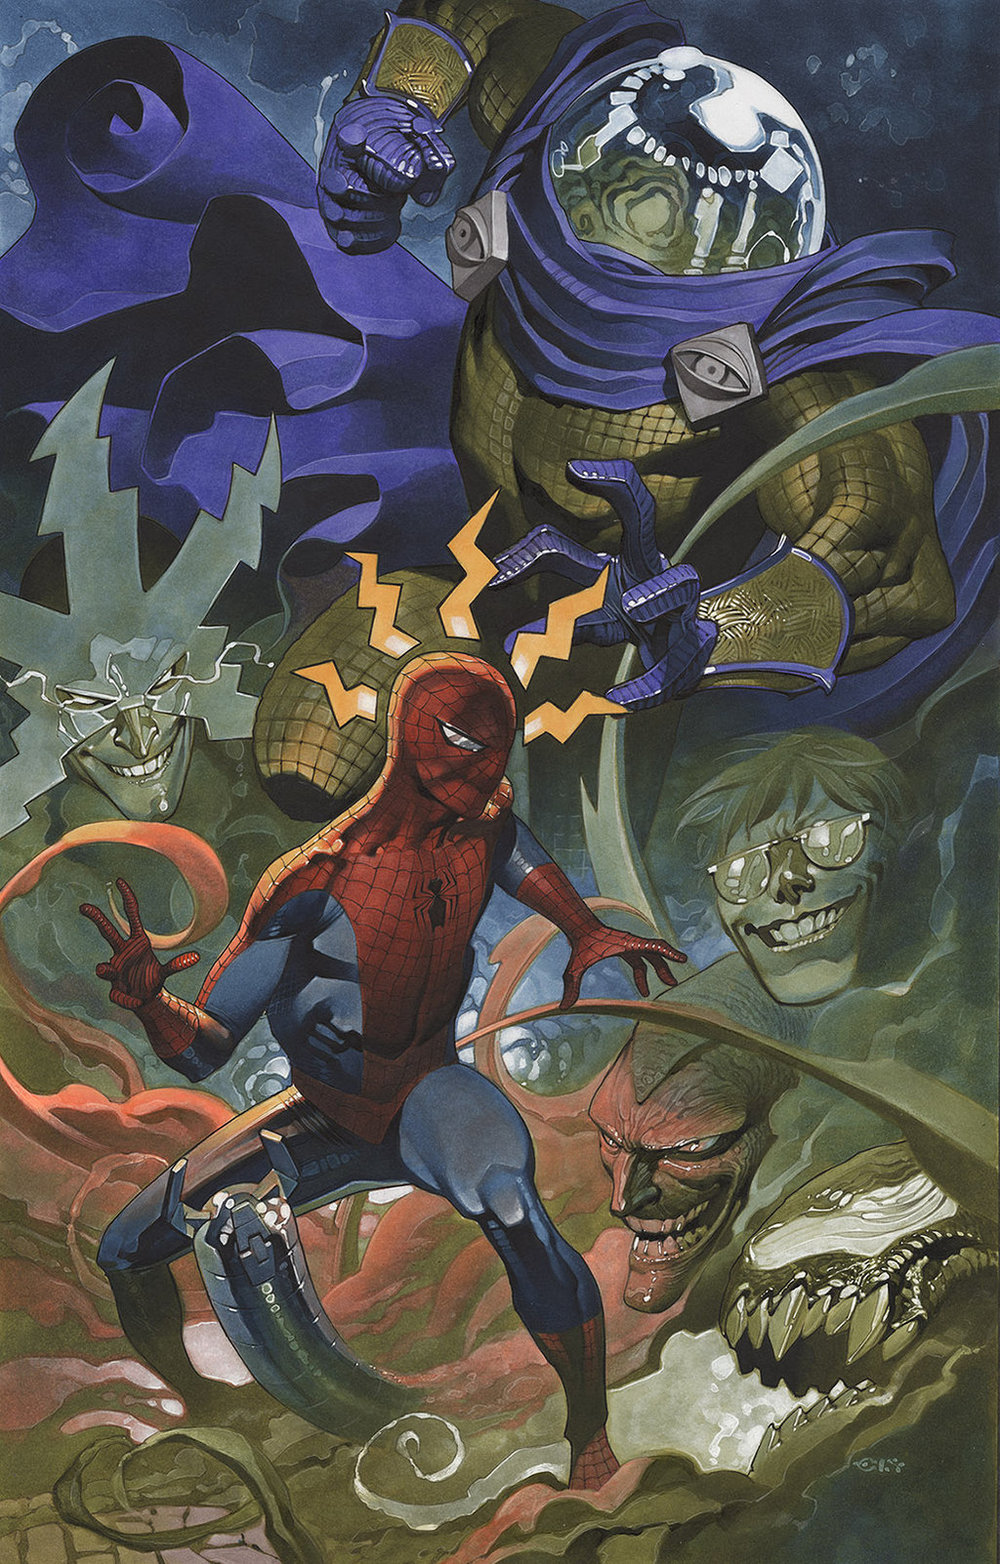 spider_man_battles_mysterio_by_christopherstevens-dar6s70.jpg